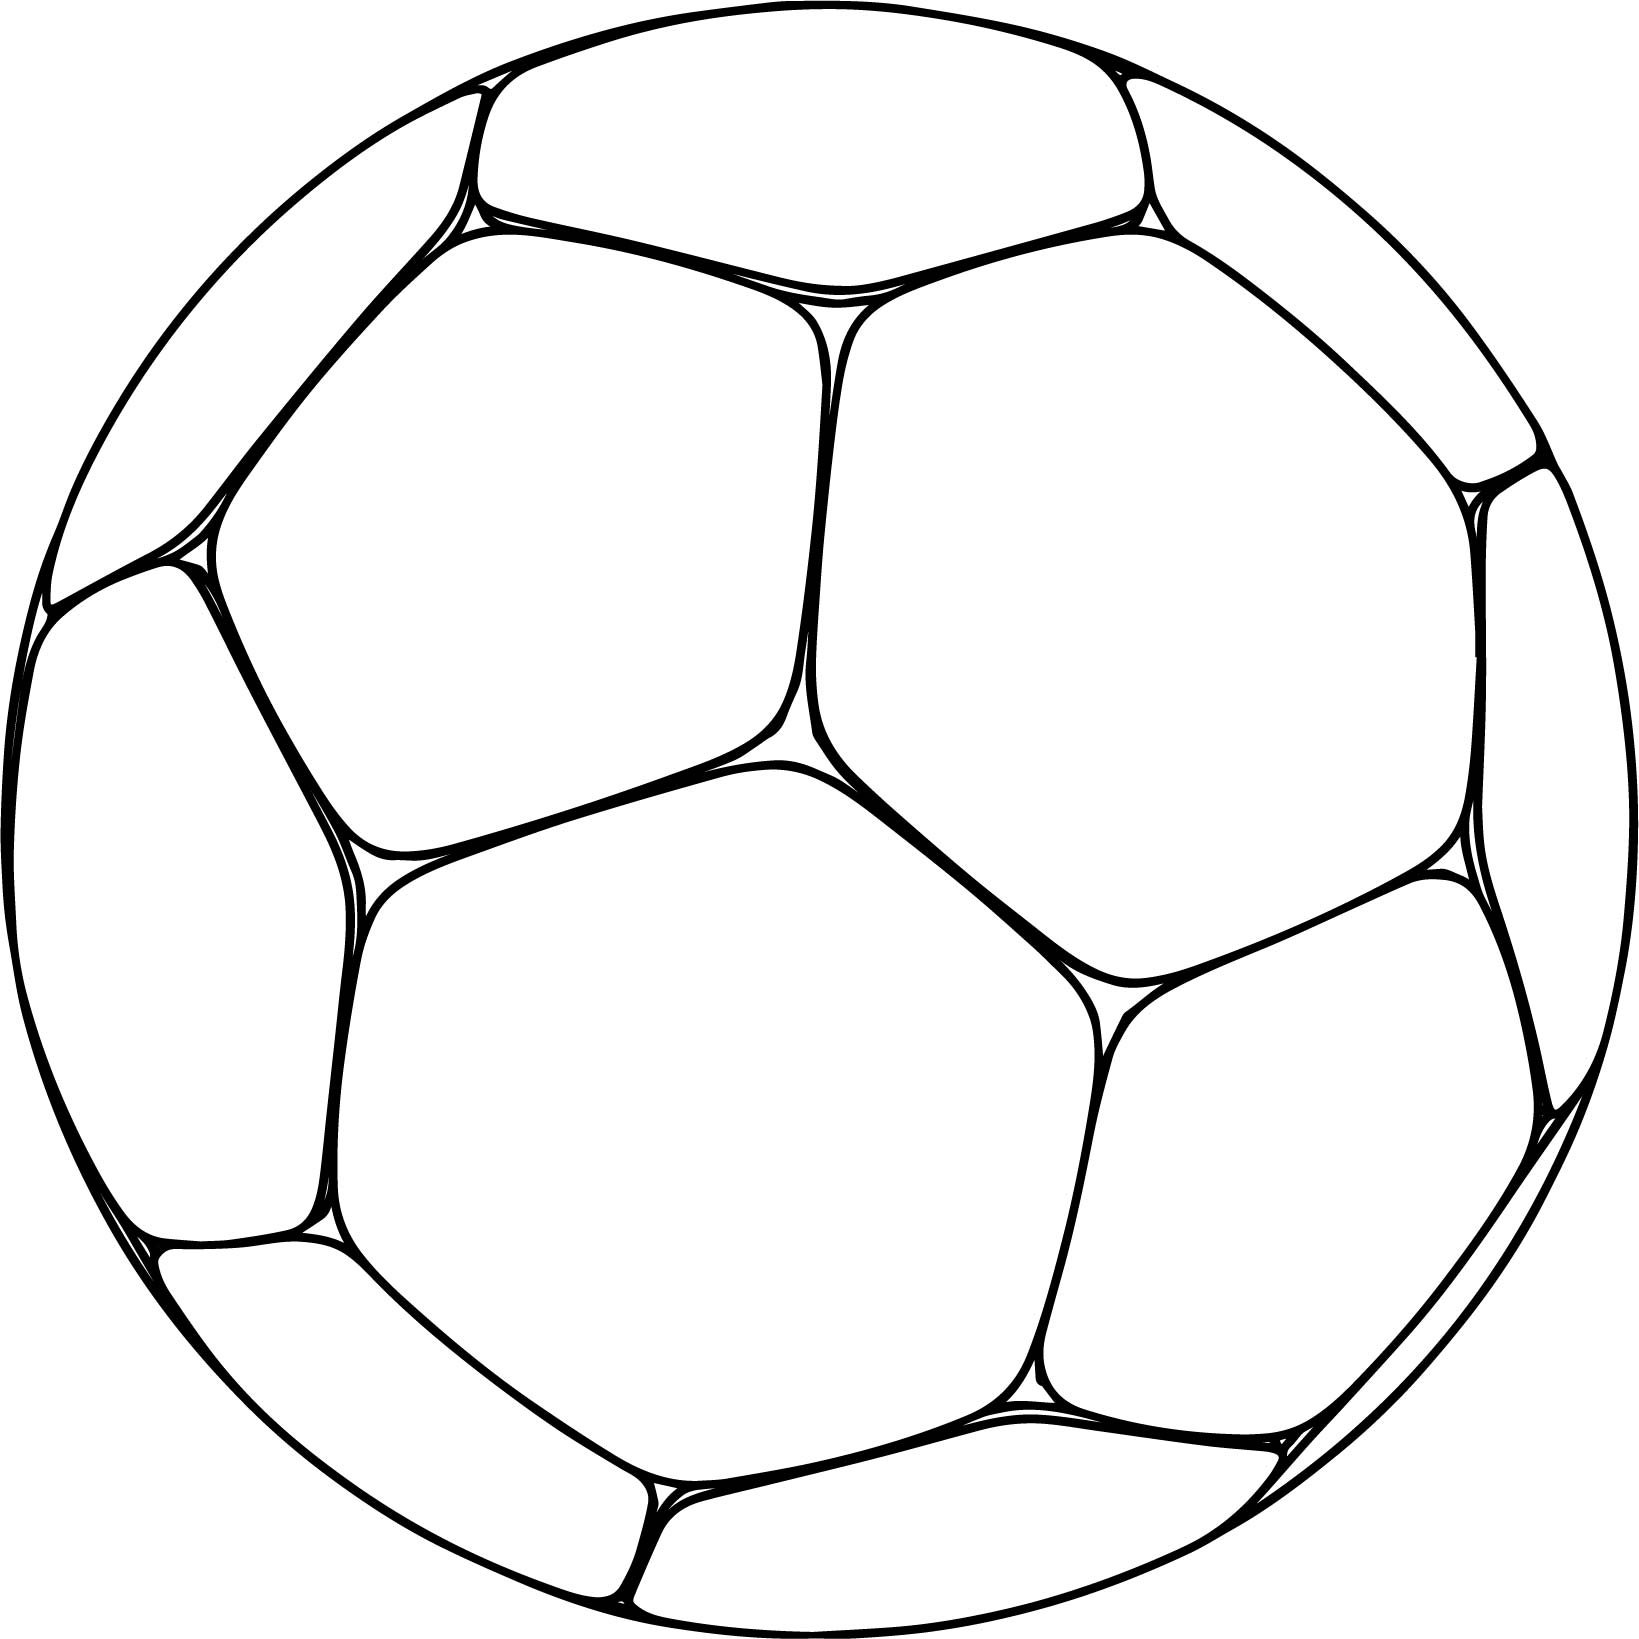 Soccer ball colouring pages